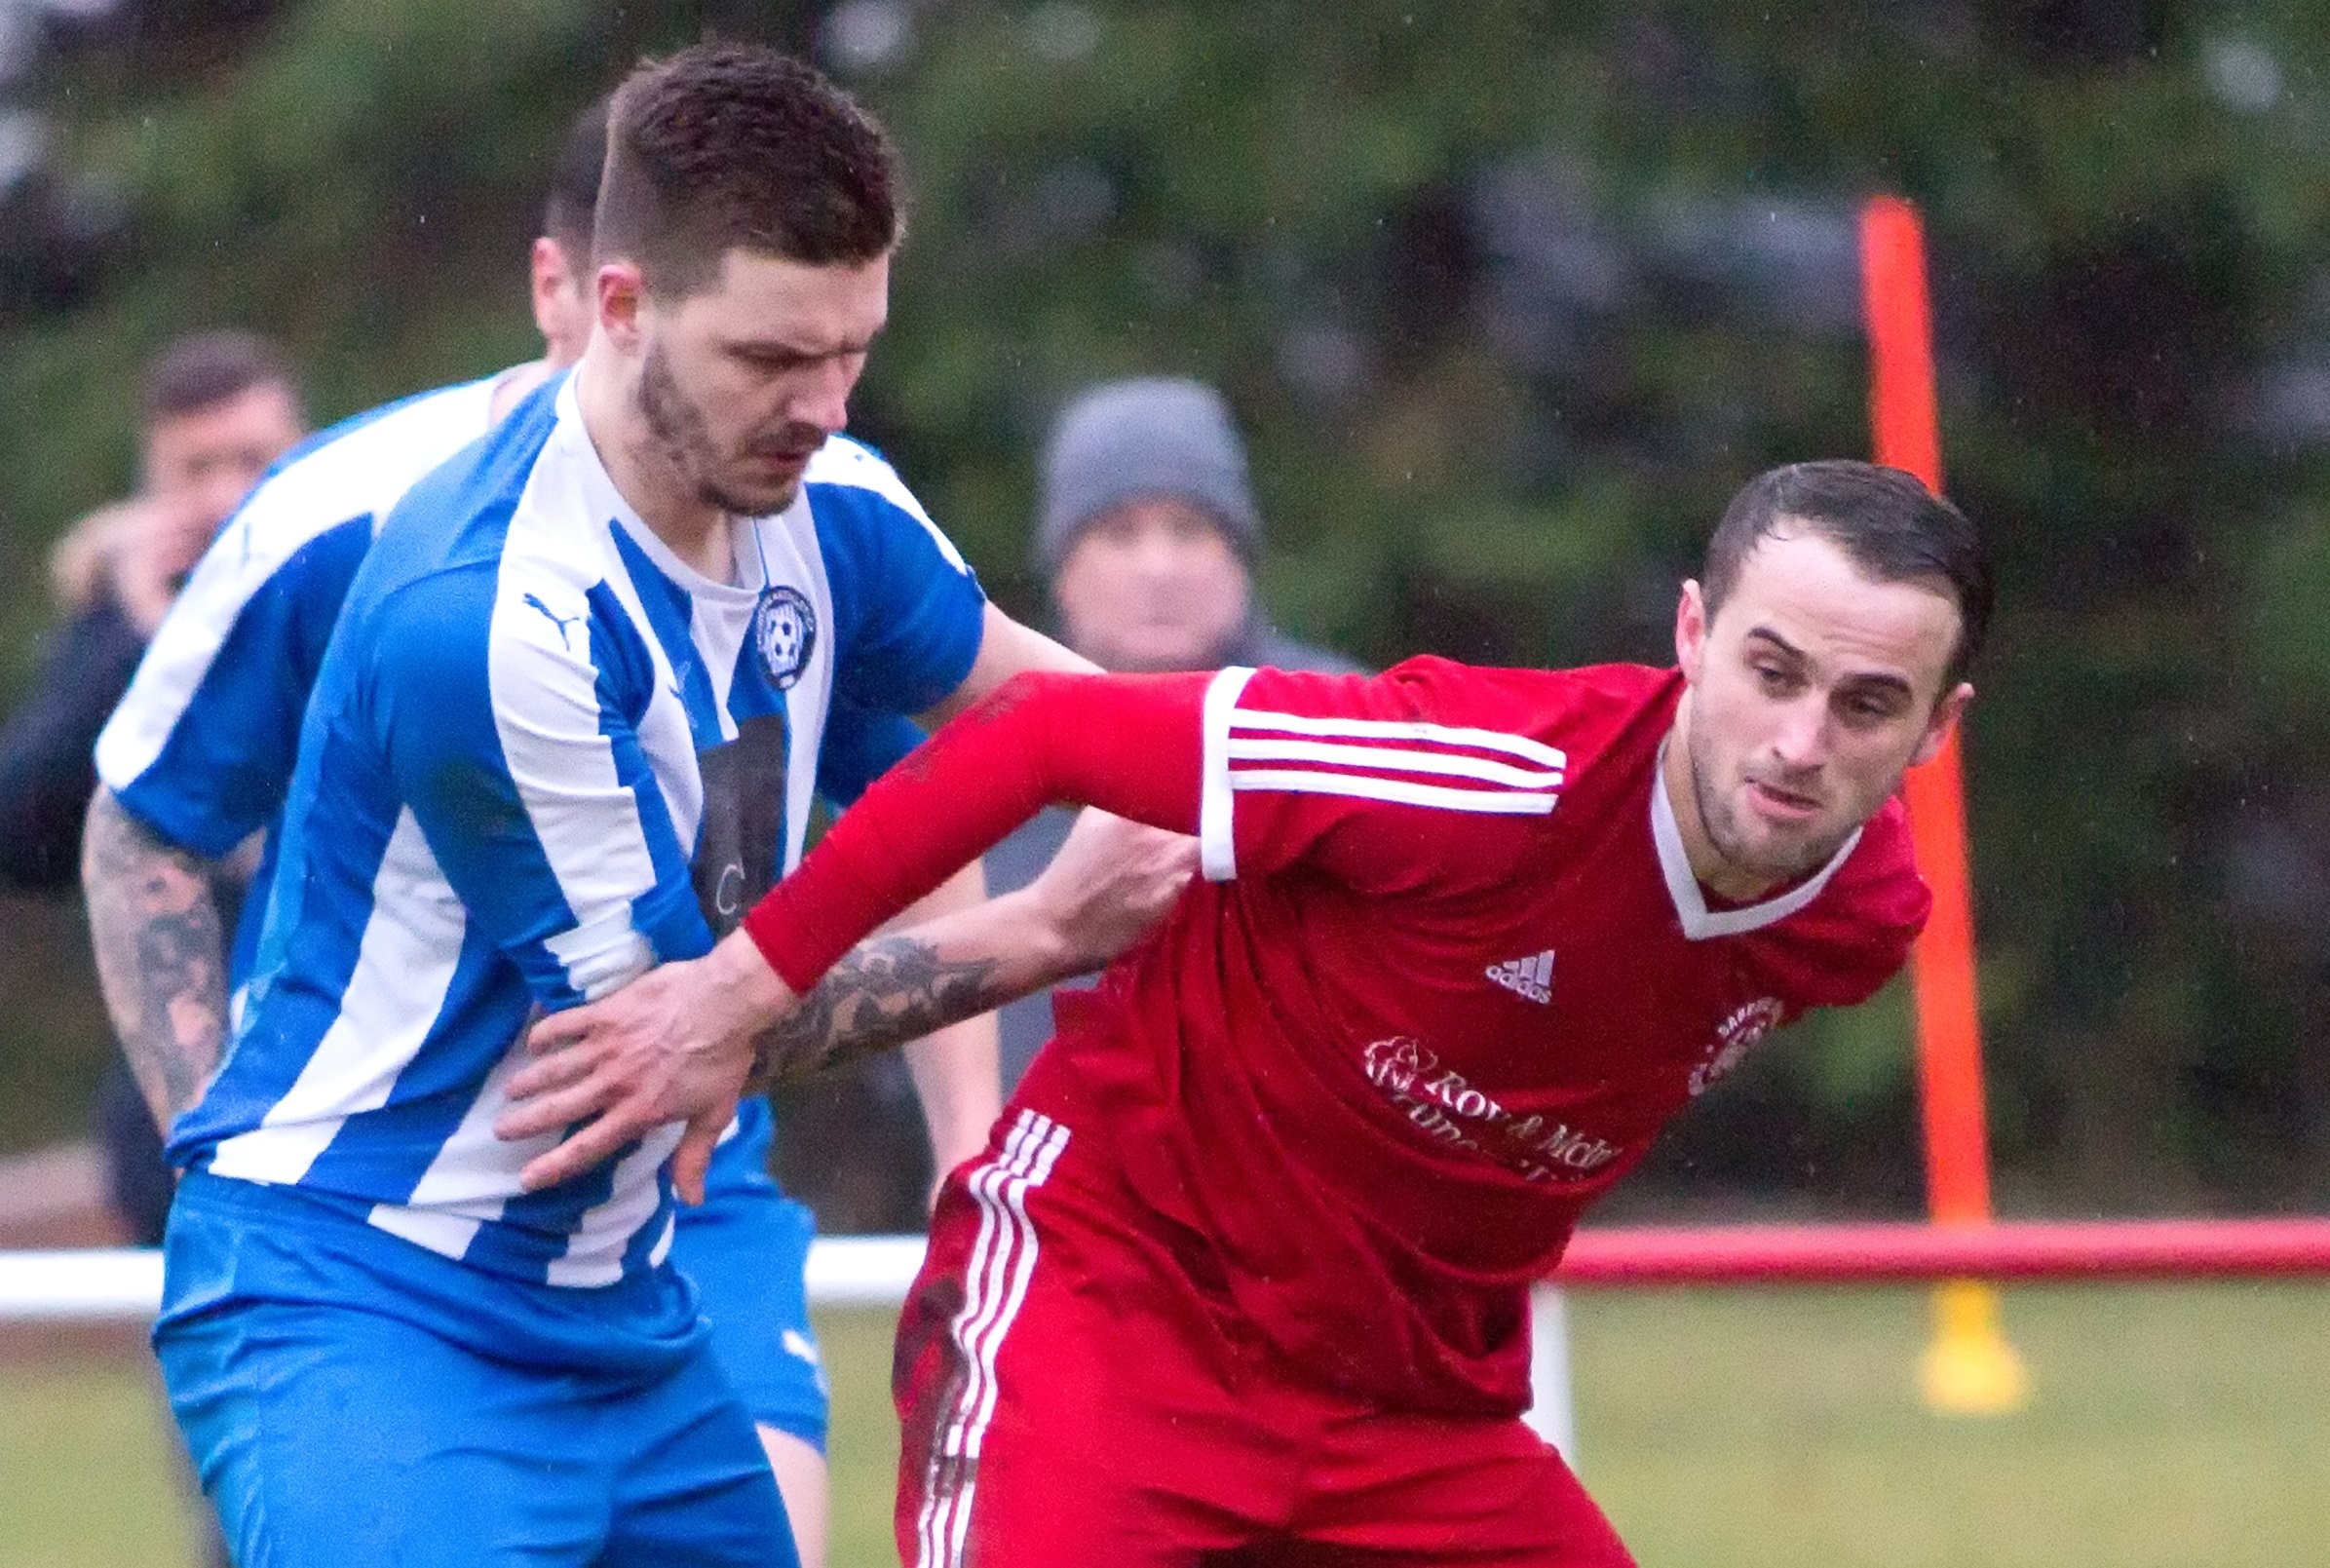 DETERMINED: Ant McTaggart is targeting a Scottish Cup run, starting with defeating Bellshill this Saturday